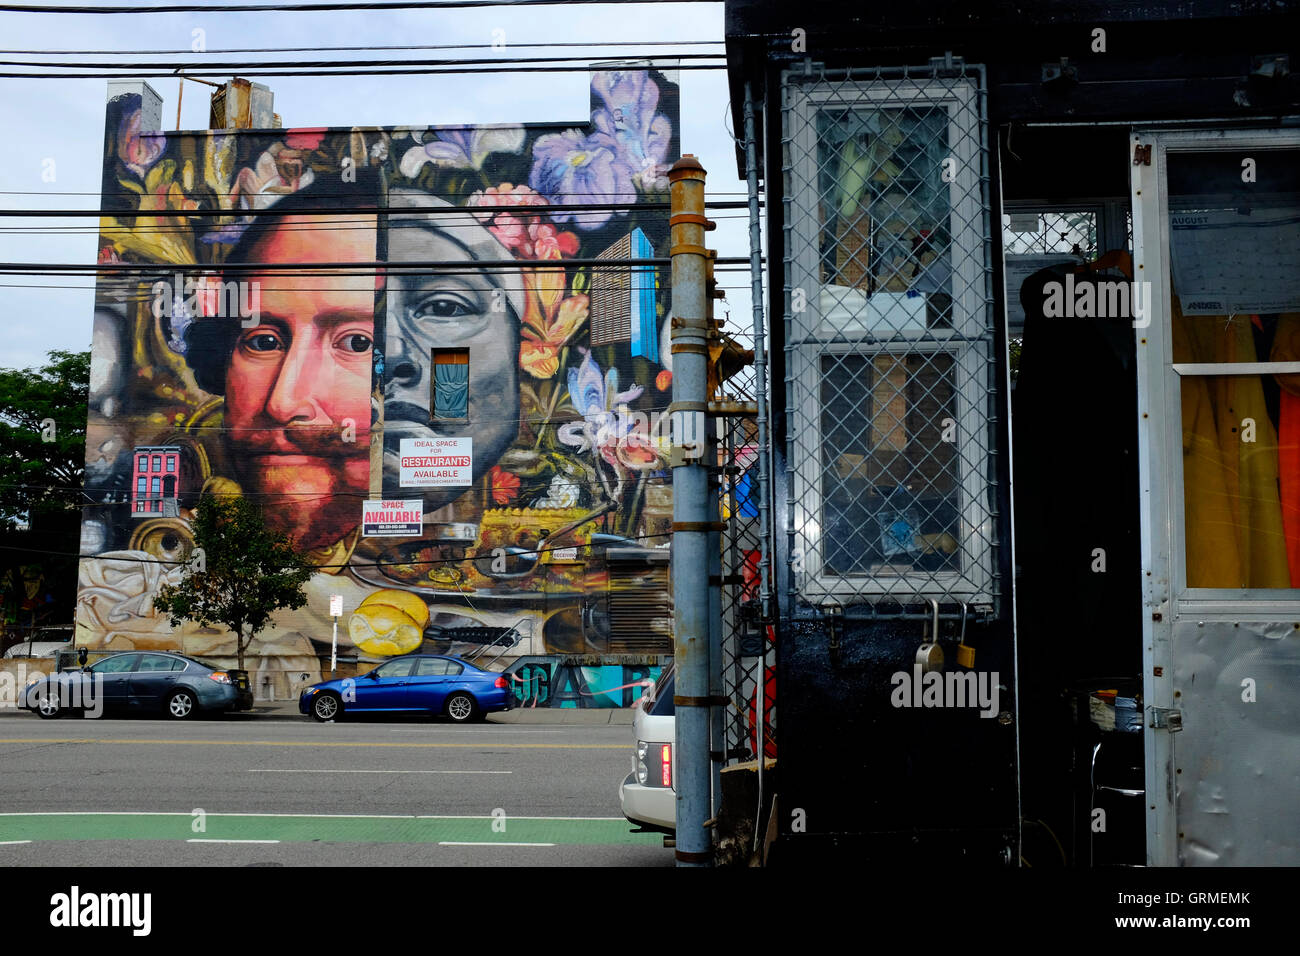 Street art mural along Christopher Columbus Drive,Jersey City,New Jersey,USA - Stock Image